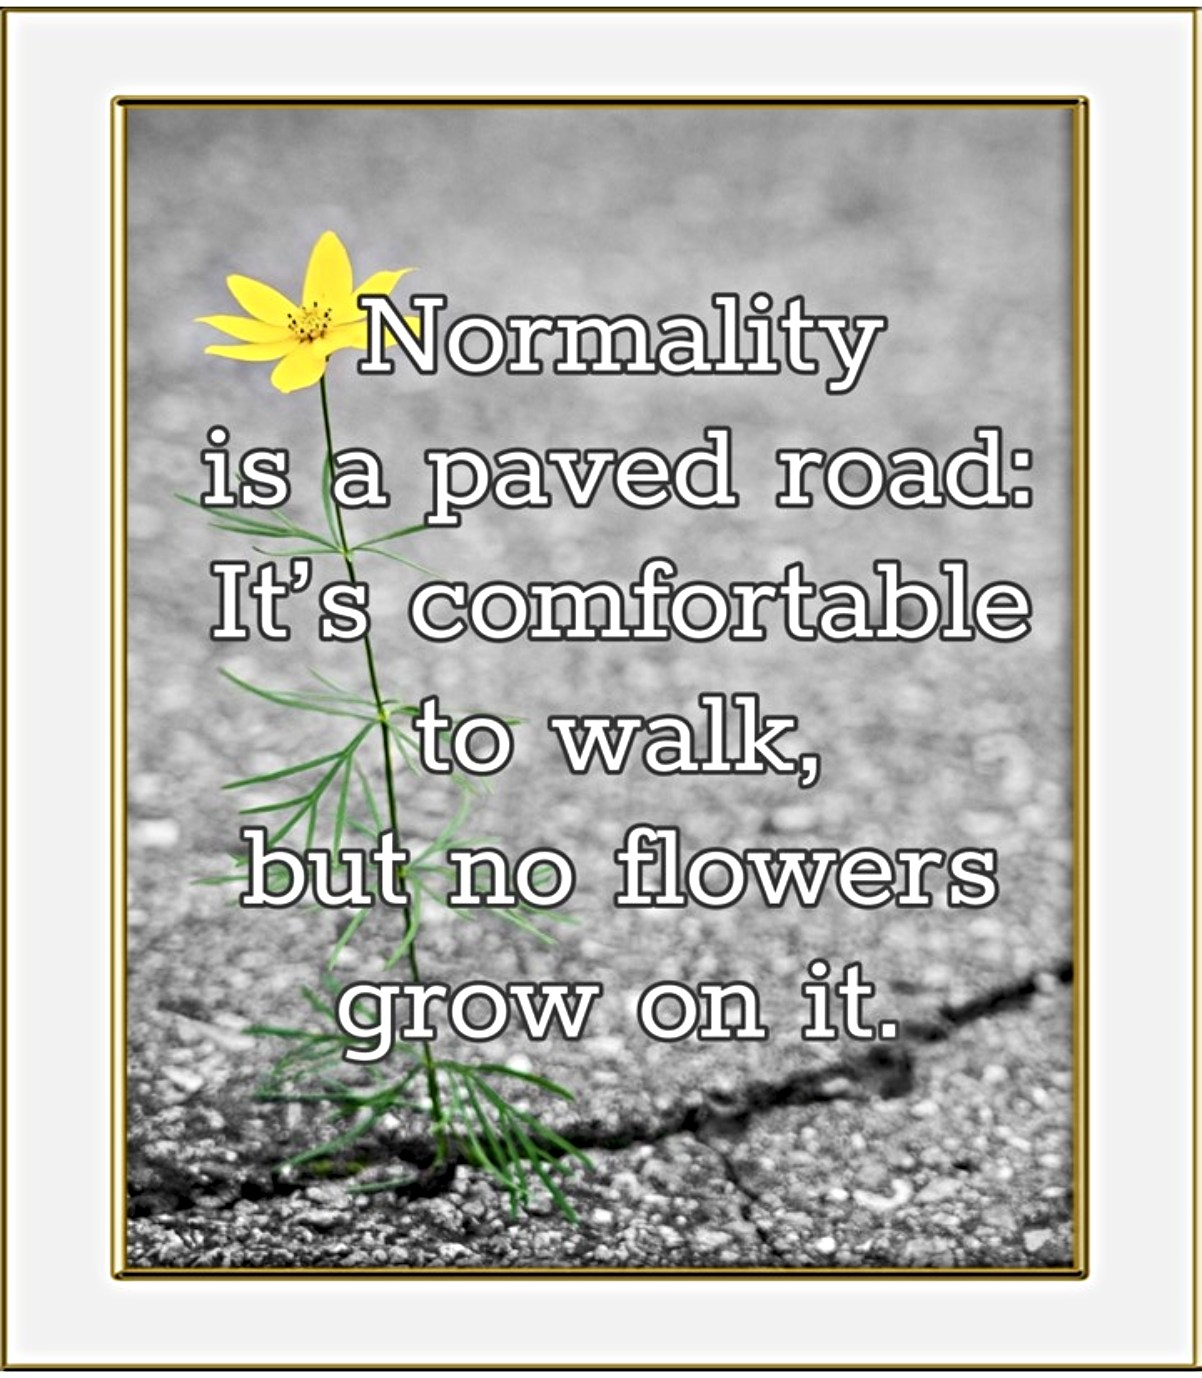 Normality is a paved road: It's comfortable to walk, but no flowers grow on it Quote Van Gogh bekitschig blog